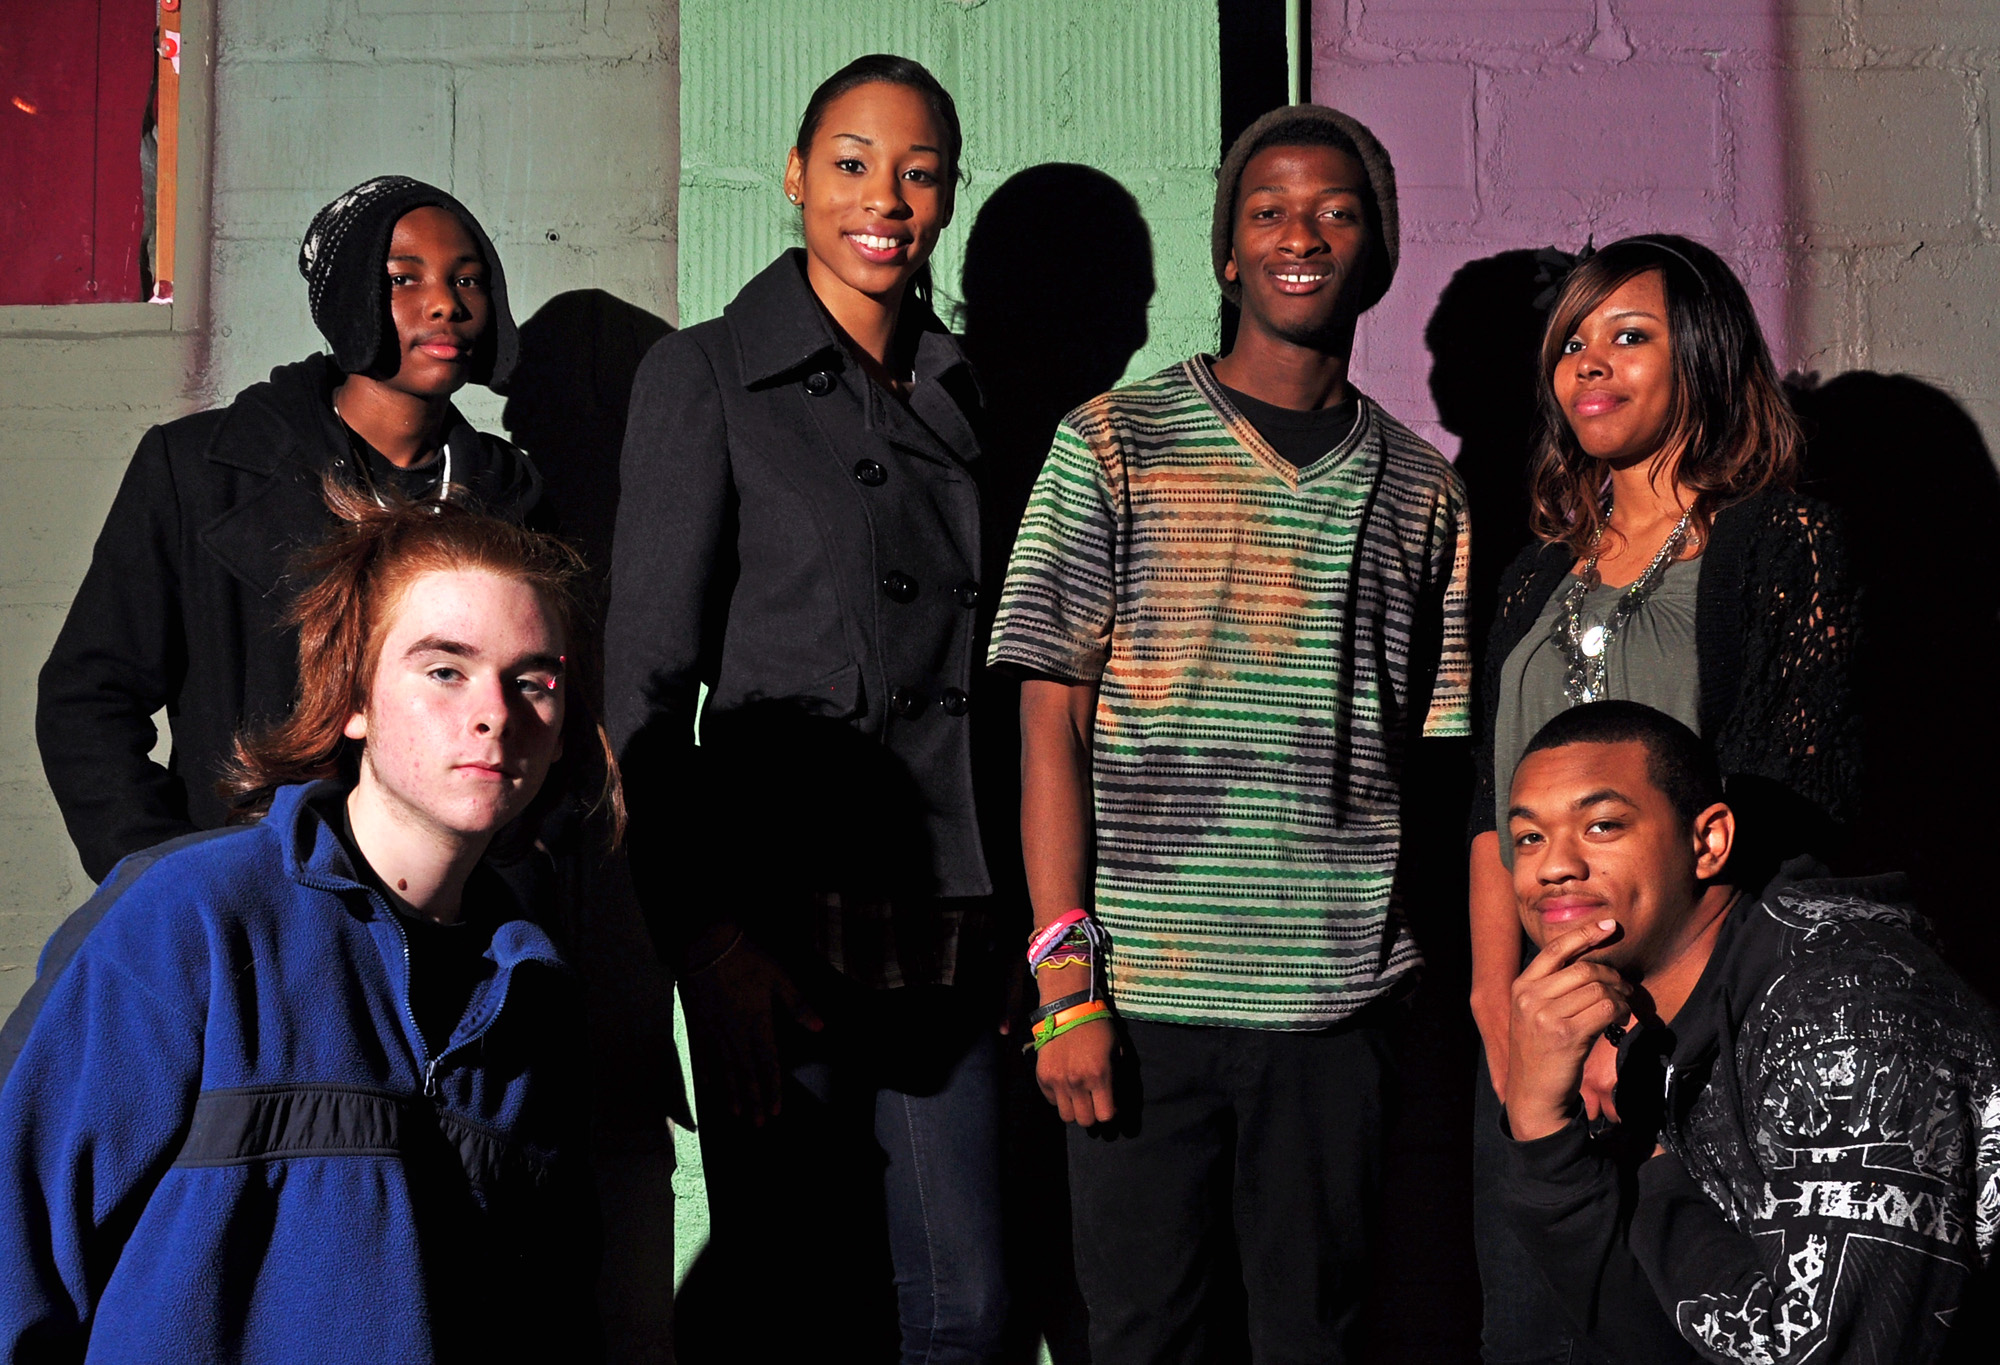 The Who WE ARE Movement, including jahmir Lewis, MaLasha henry, Cheronne Williams, Jada Winston, and others.